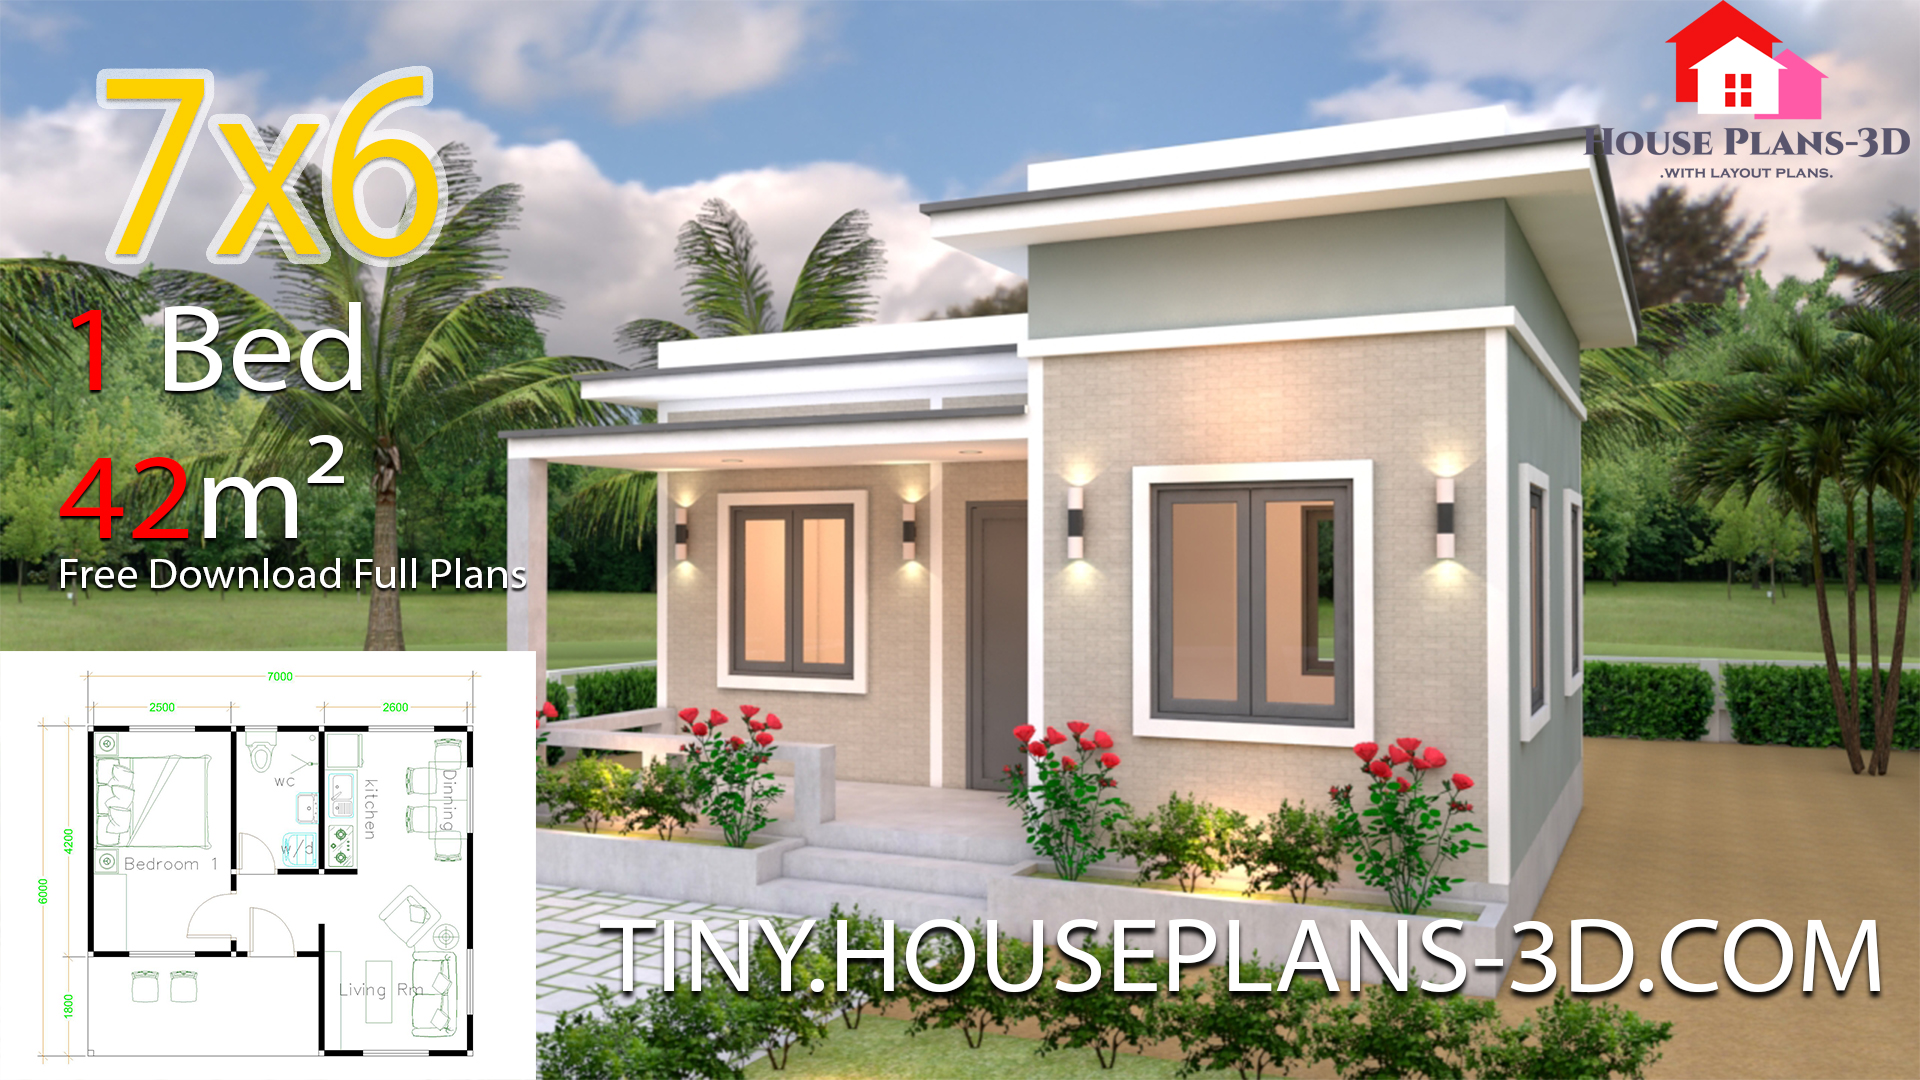 House Plans 7x6 With One Bedroom Flat Roof Samphoas Plan